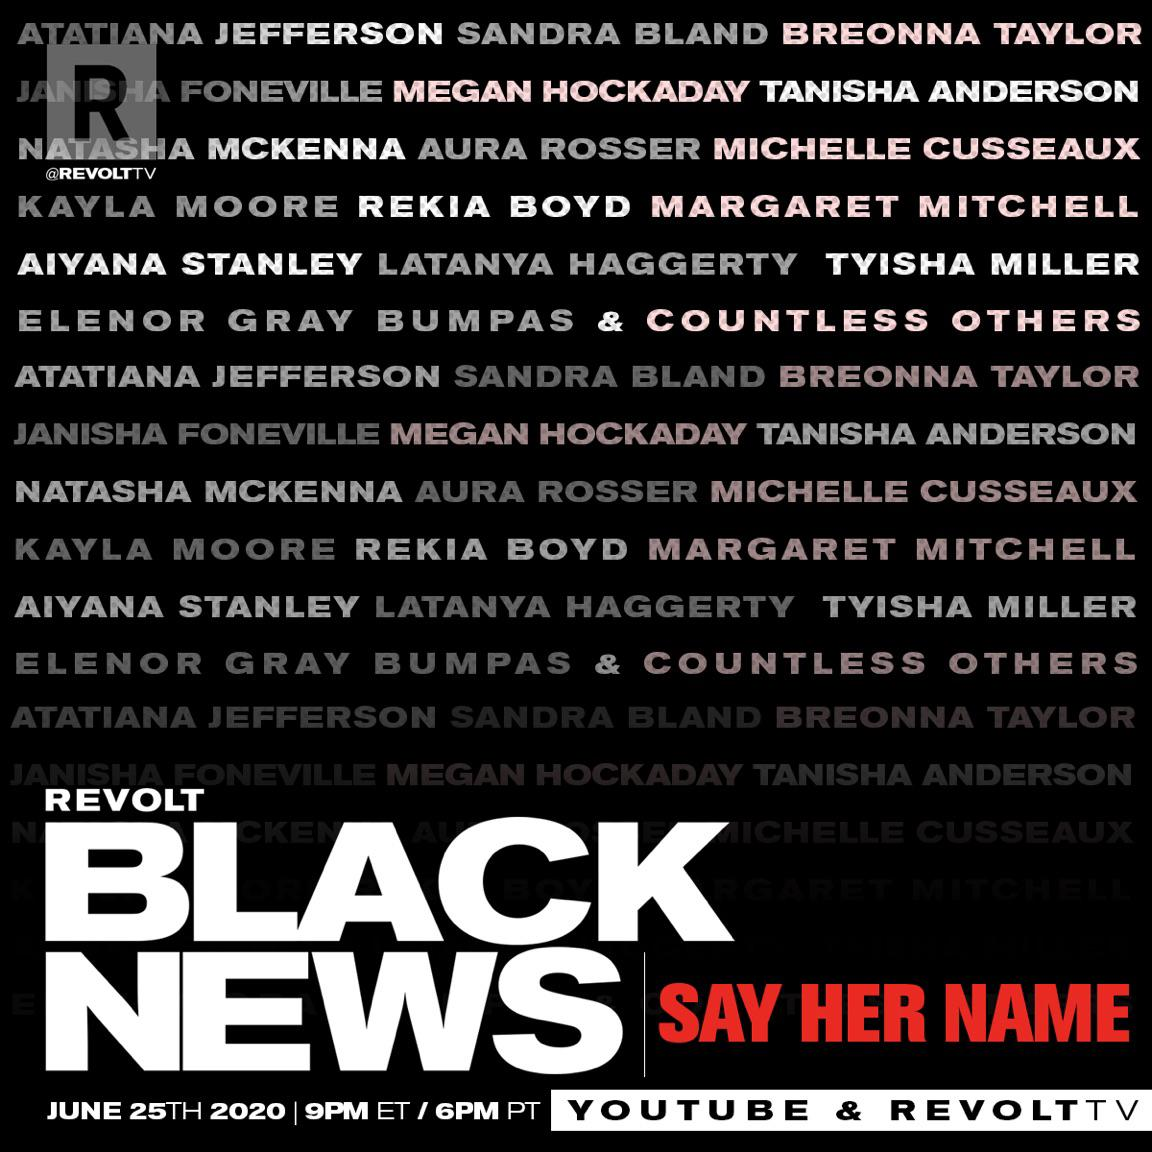 In about 30 minutes tune in to @revolttv #SayHerName #REVOLTBLACKNEWS